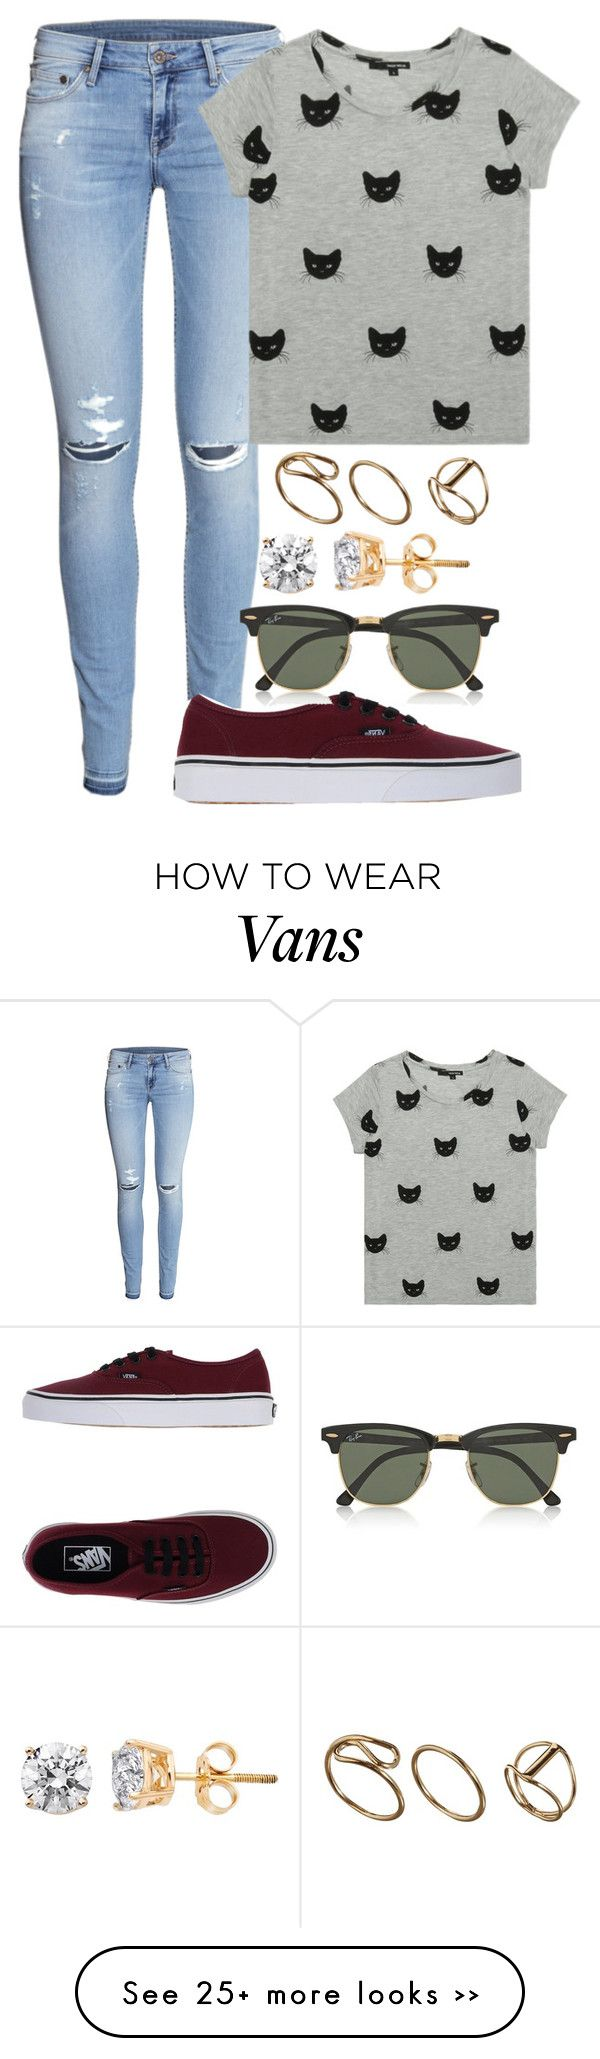 """Untitled #376"" by livuka on Polyvore"